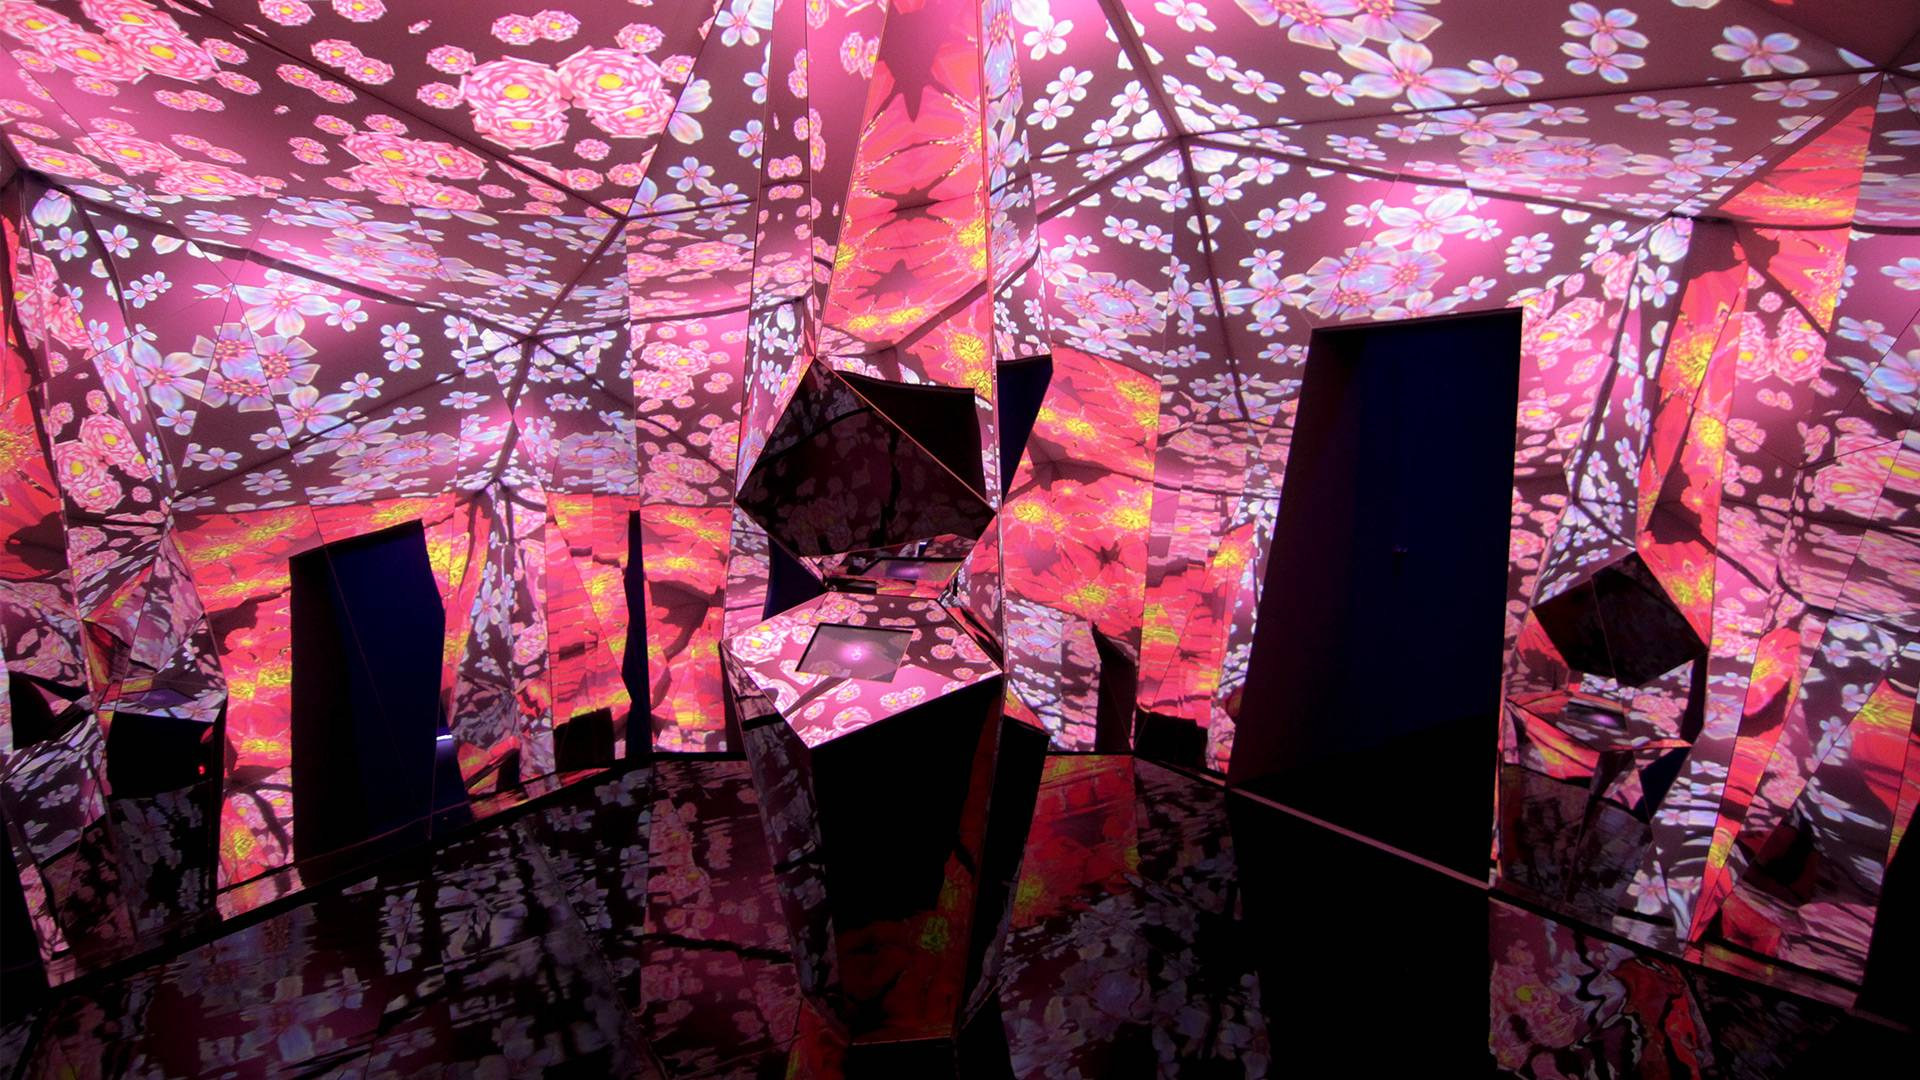 Museum of Feelings: Exhilarated Room, responsive floral kaleidoscope and mirror installation